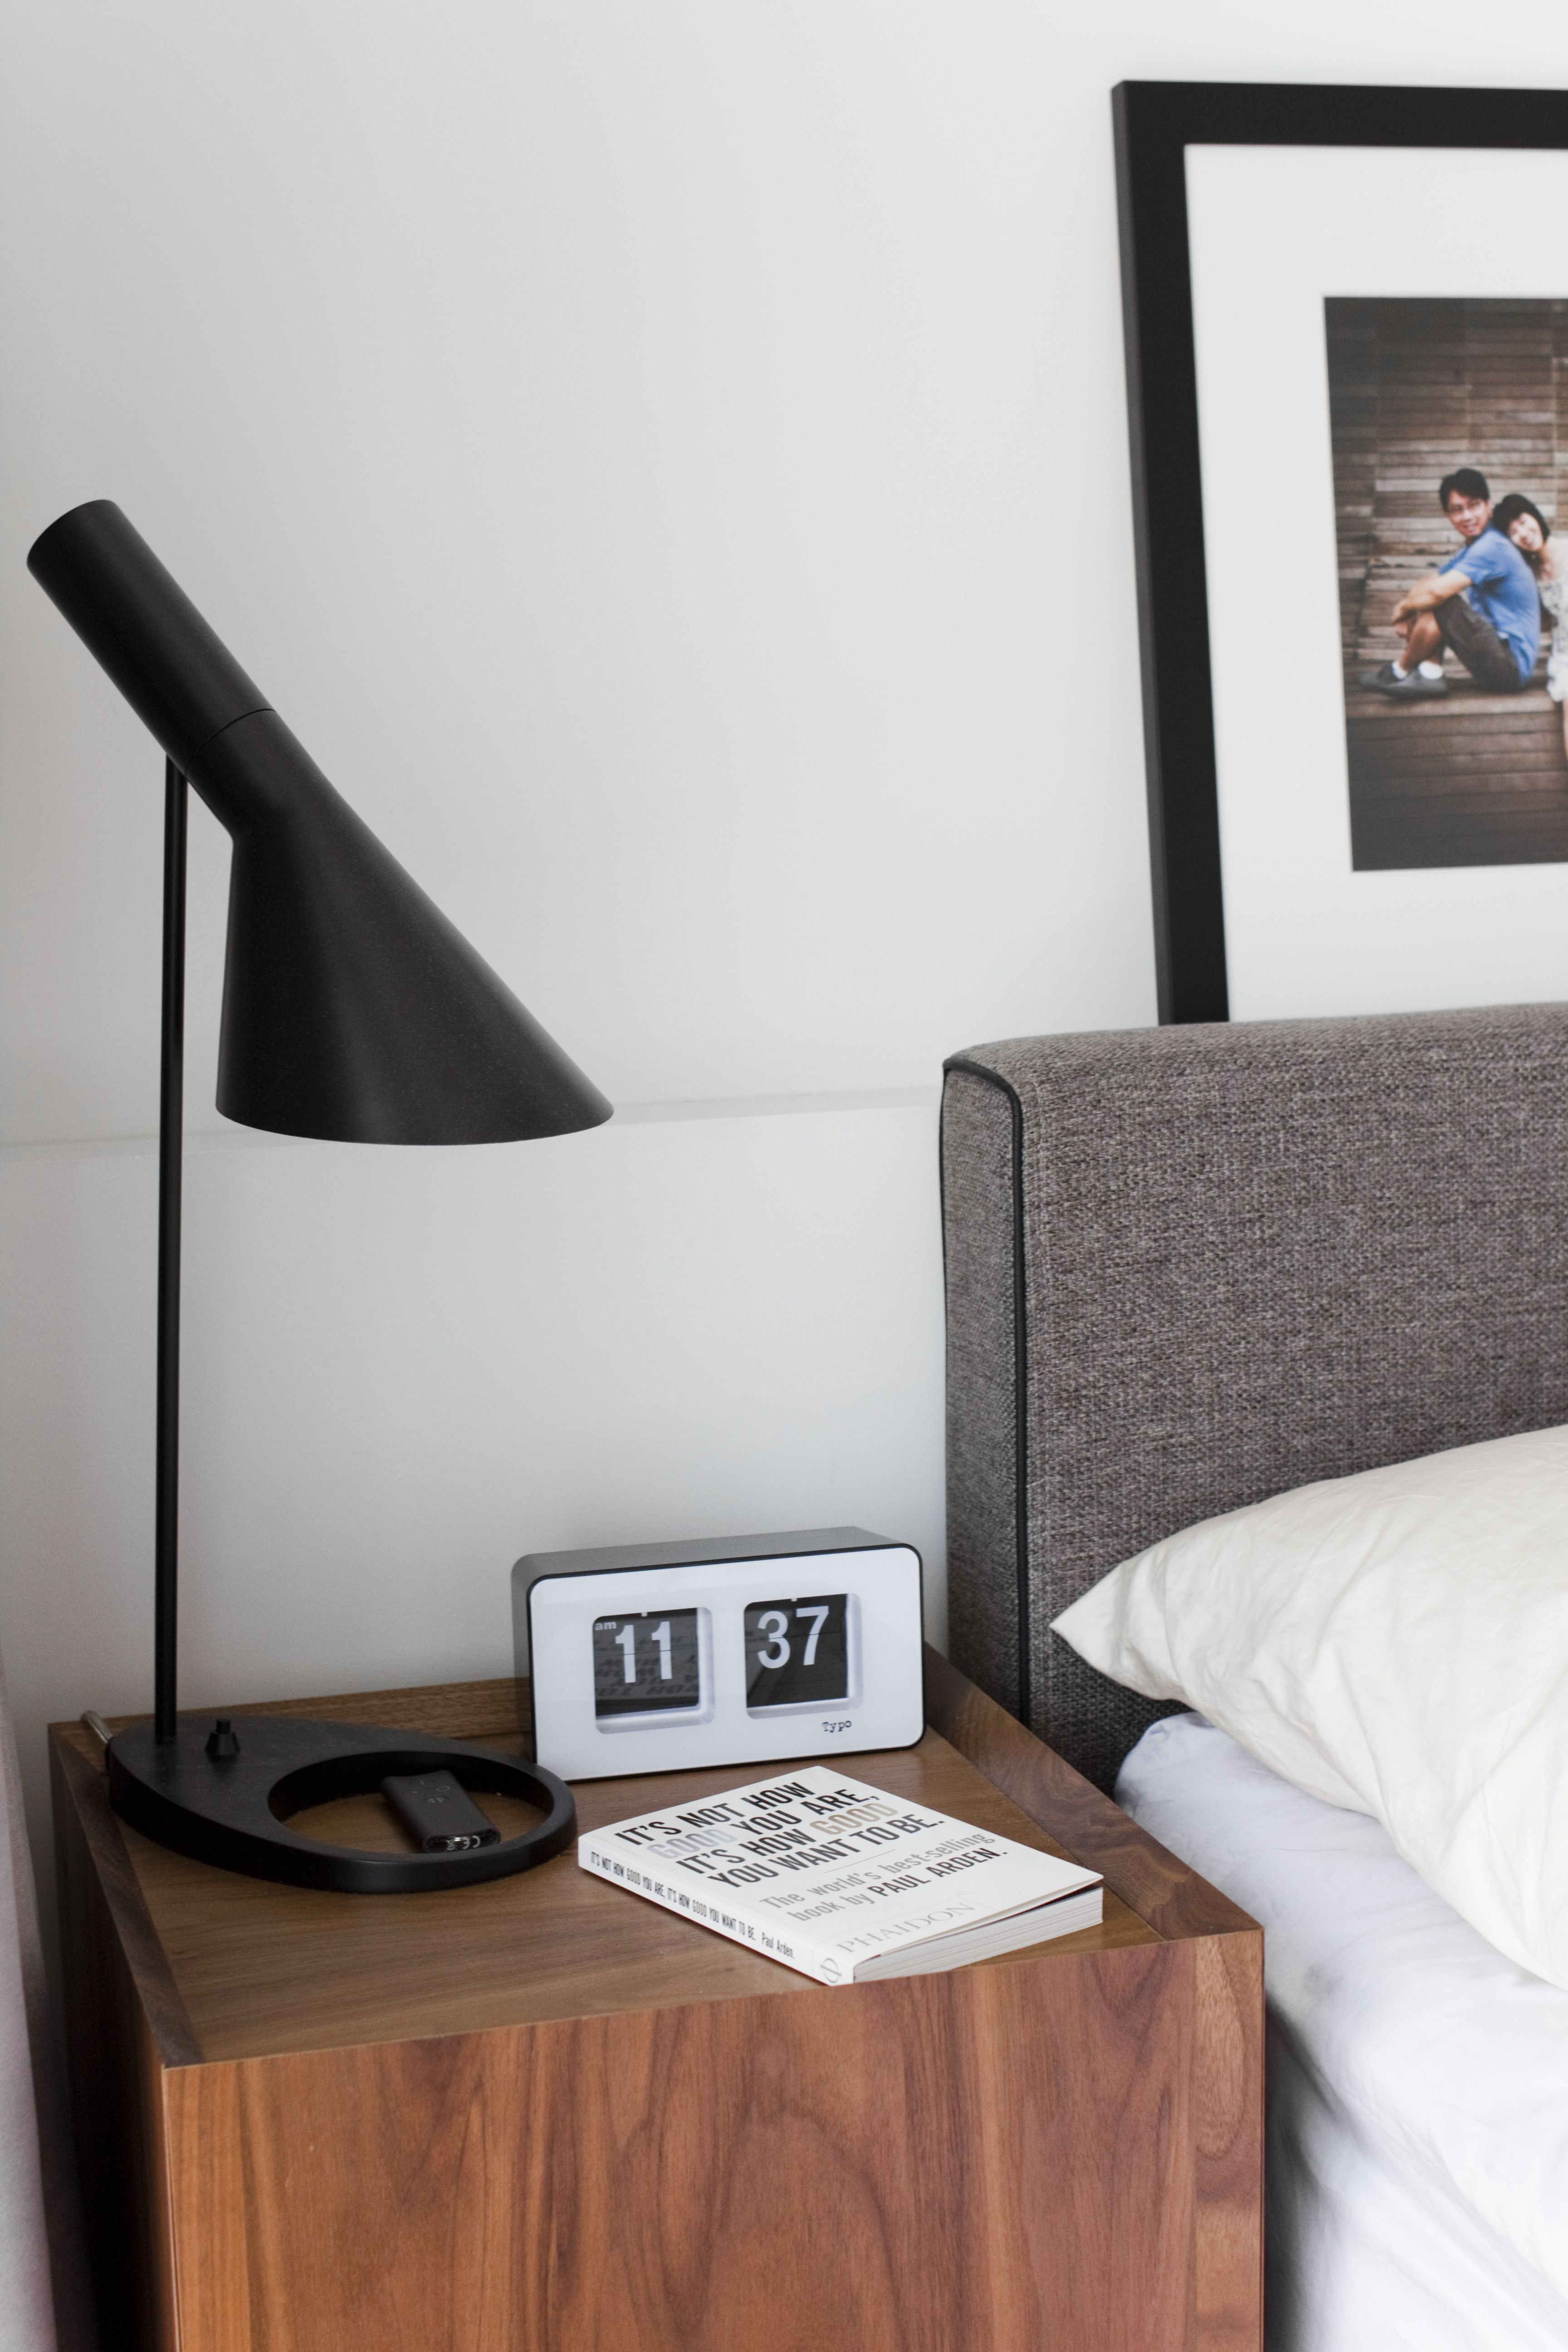 Bedside table storage from AIR Division and AJ Lamp. Flip